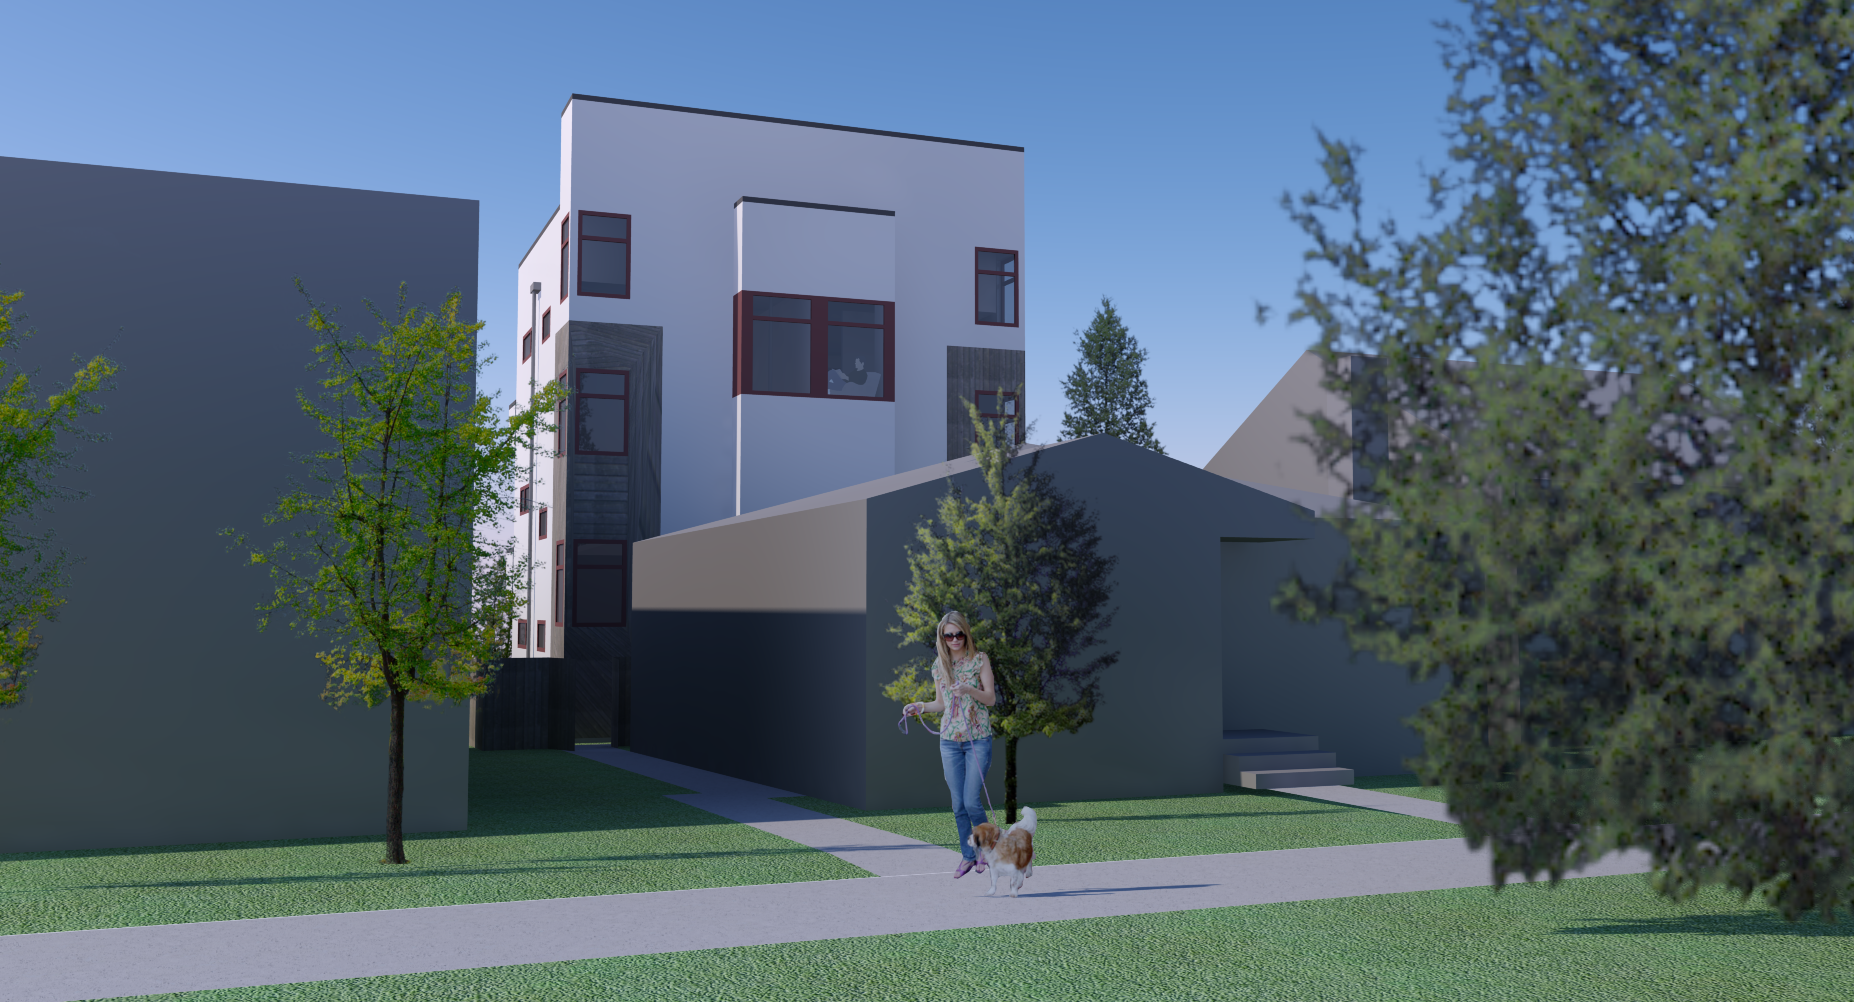 graphicNW60thTownhousesFrontperspectiveCopyrightVELOCIPEDEarchitectsinc2016 1.png